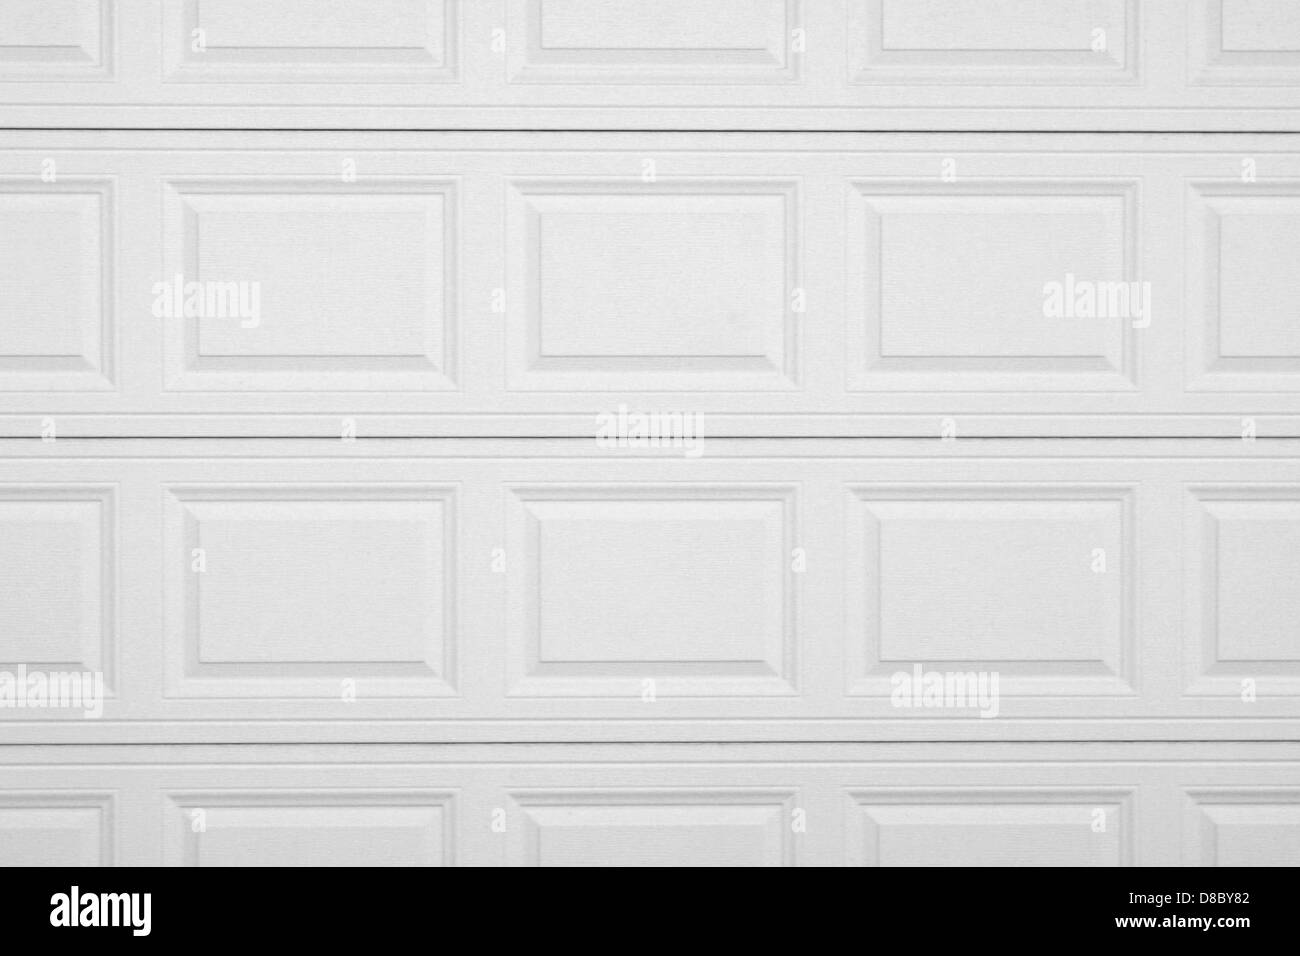 white garage door texture. White Garage Door Texture. Texture E